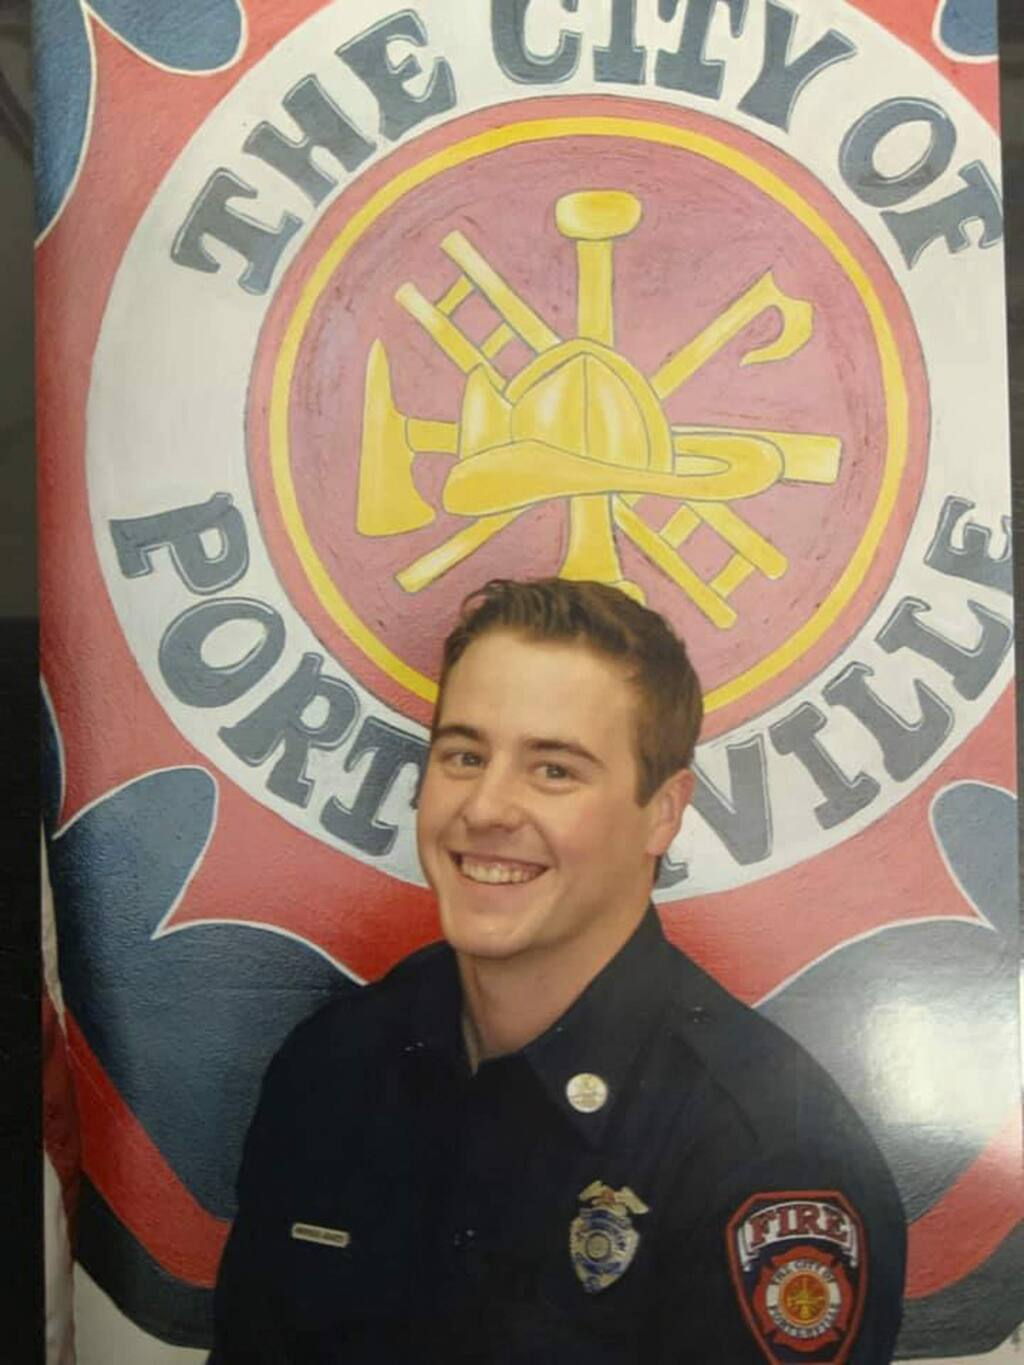 This undated photo provided by the Porterville, Calif., Fire Department show firefighter Patrick Jones. Two 13-year-old boys were arrested Tuesday, Feb. 18, 2020, for allegedly starting a blaze at the Porterville, Calif., Public Library that killed fire Capt. Raymond Figueroa, 35. Firefighter Jones, 25, is still missing, (Porterville Fire Department via AP)